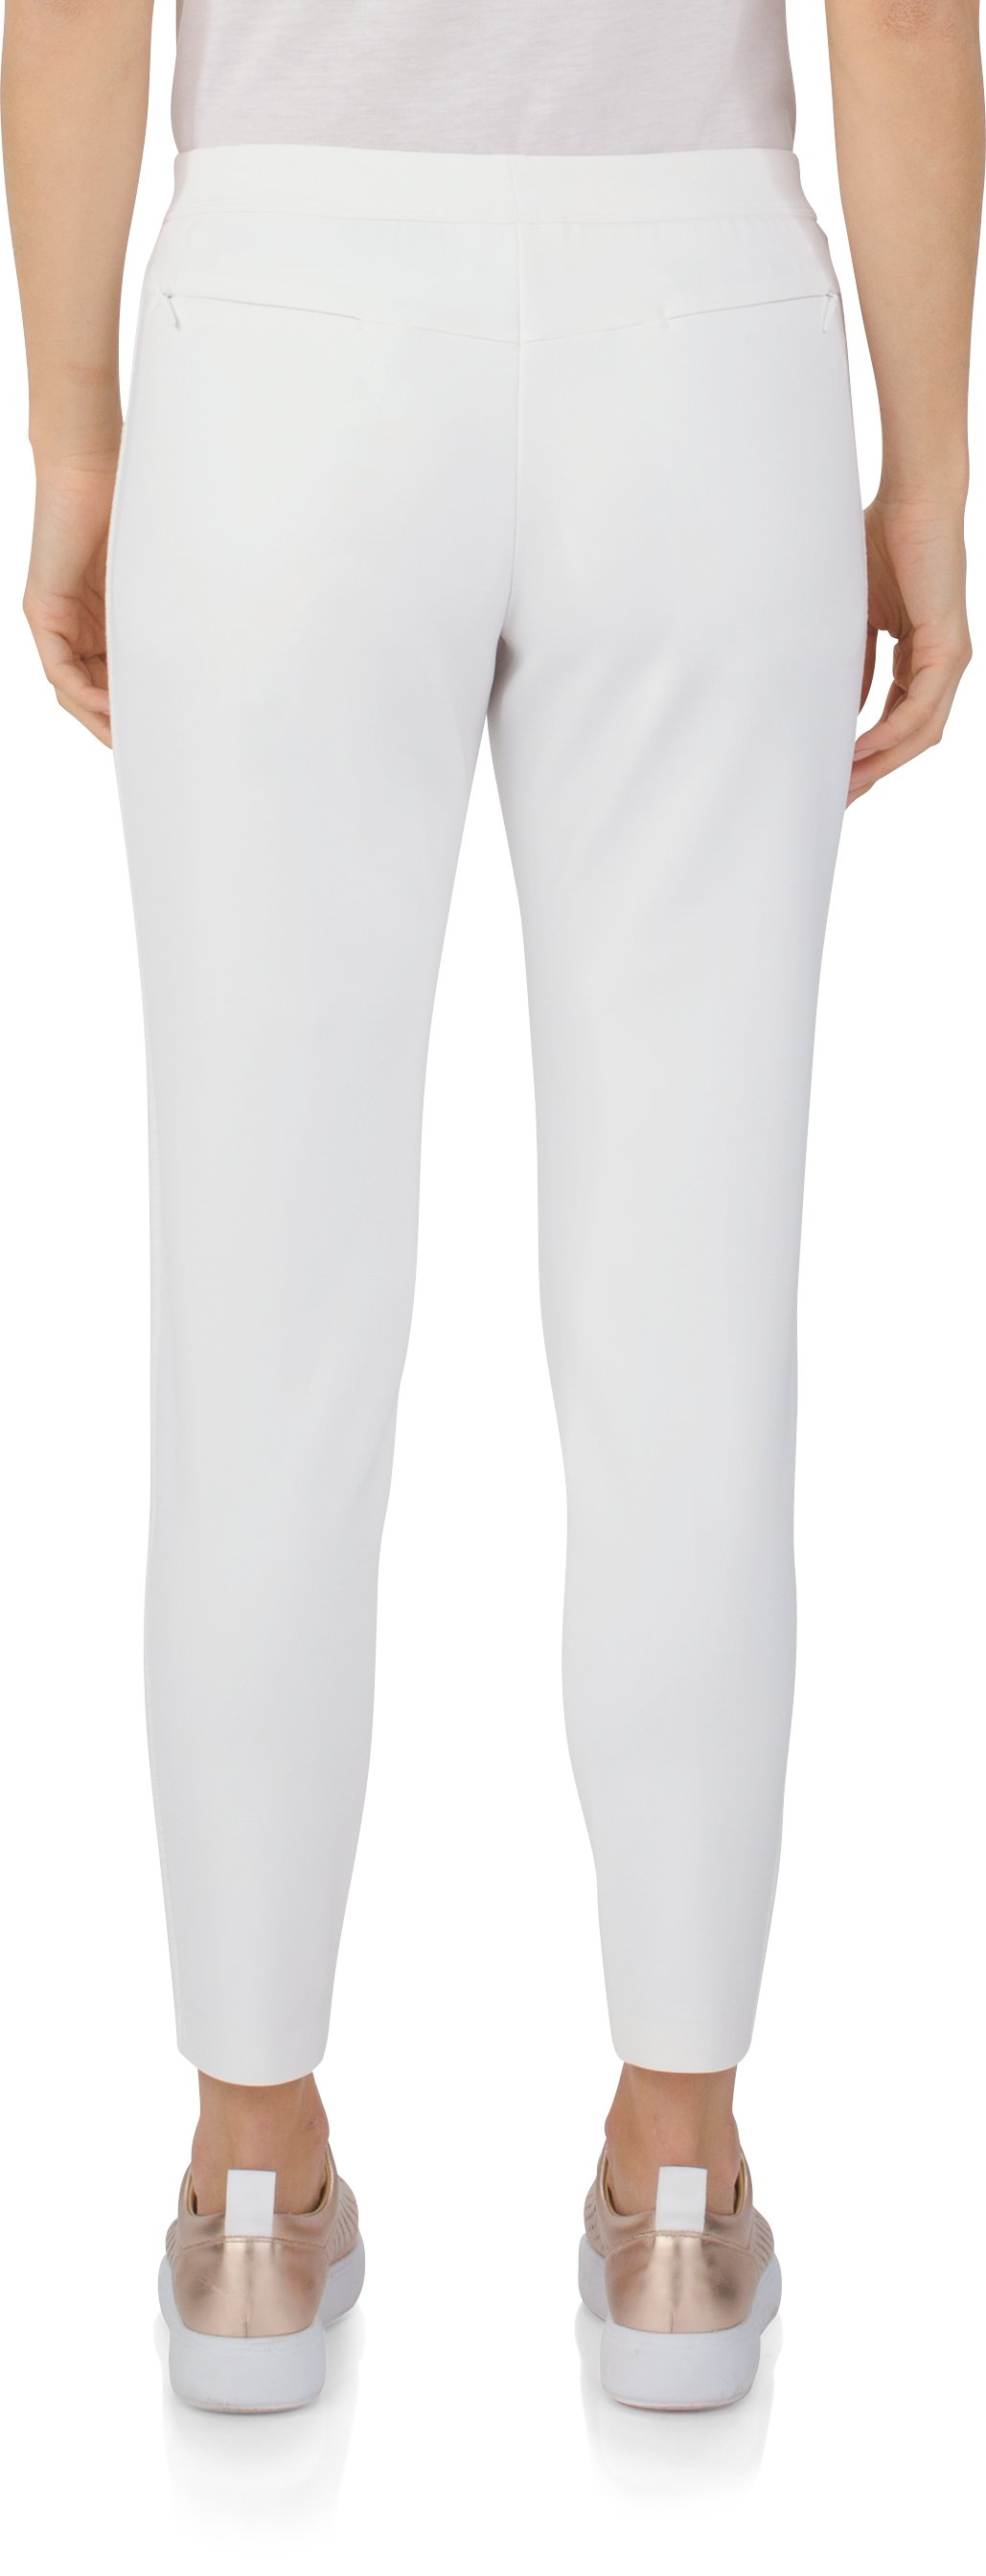 UAS Scuba Pull-On Pant, White, undefined